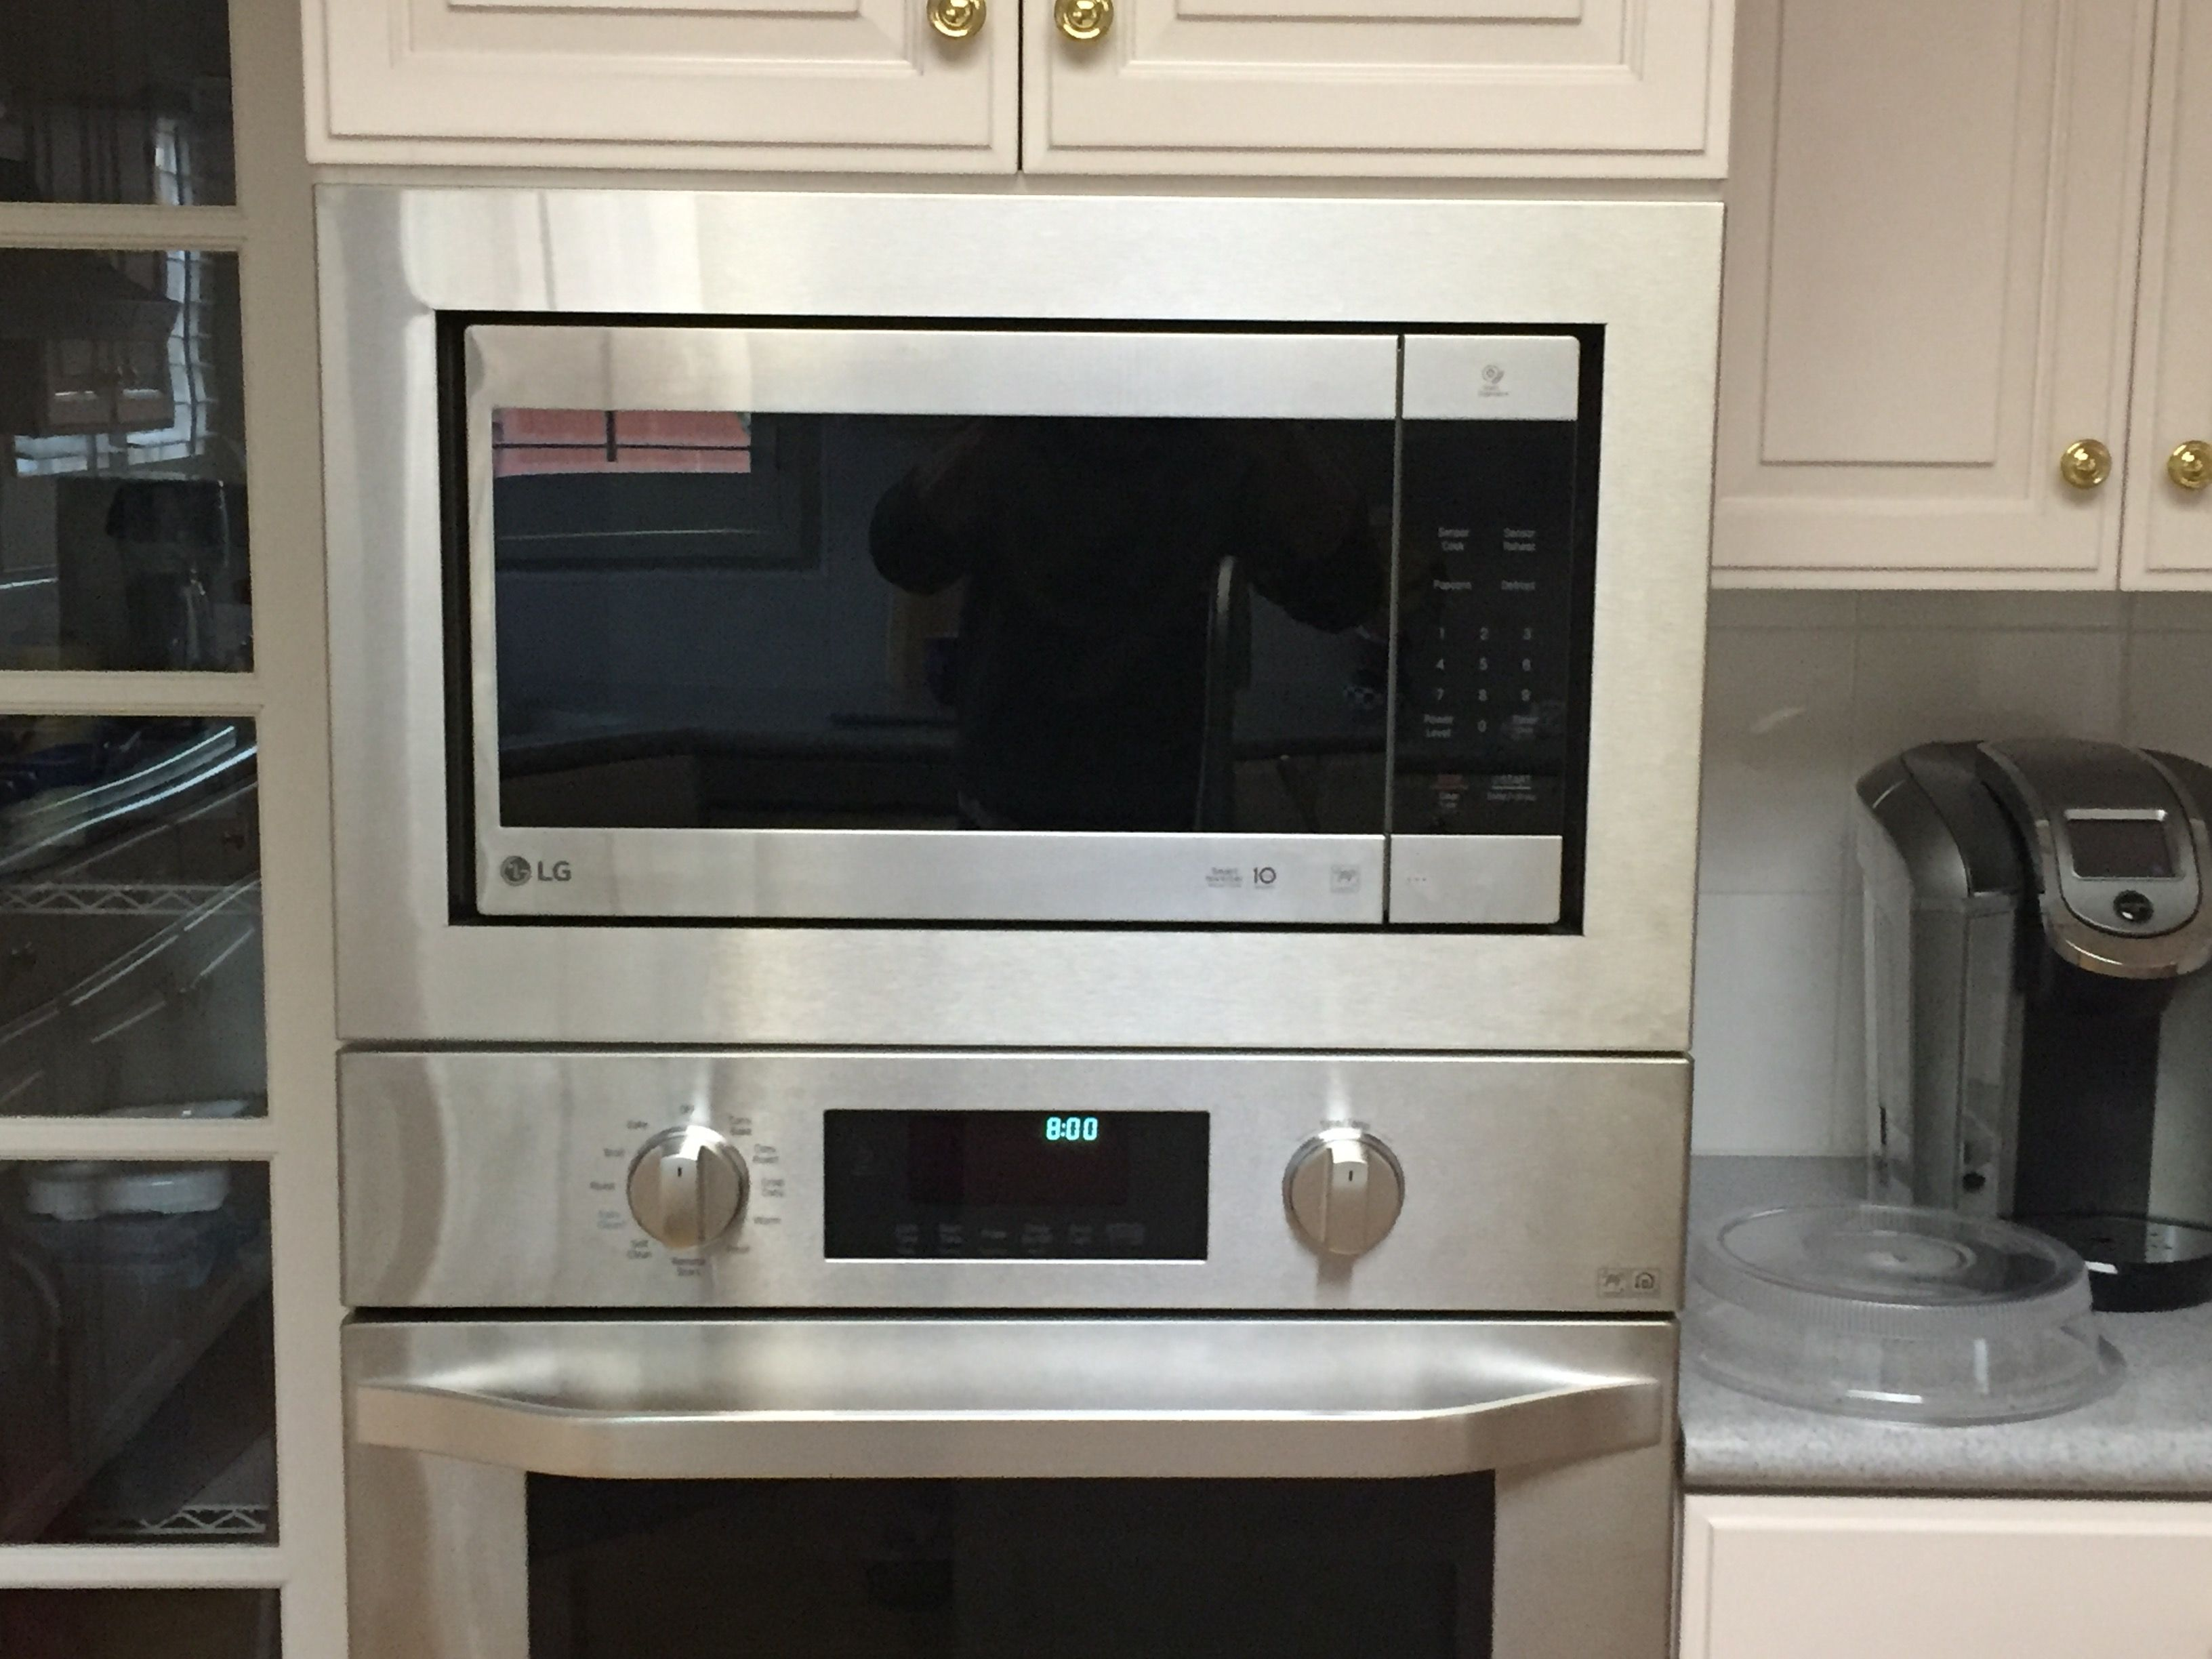 Custom Trim Kit For A Lg Microwave